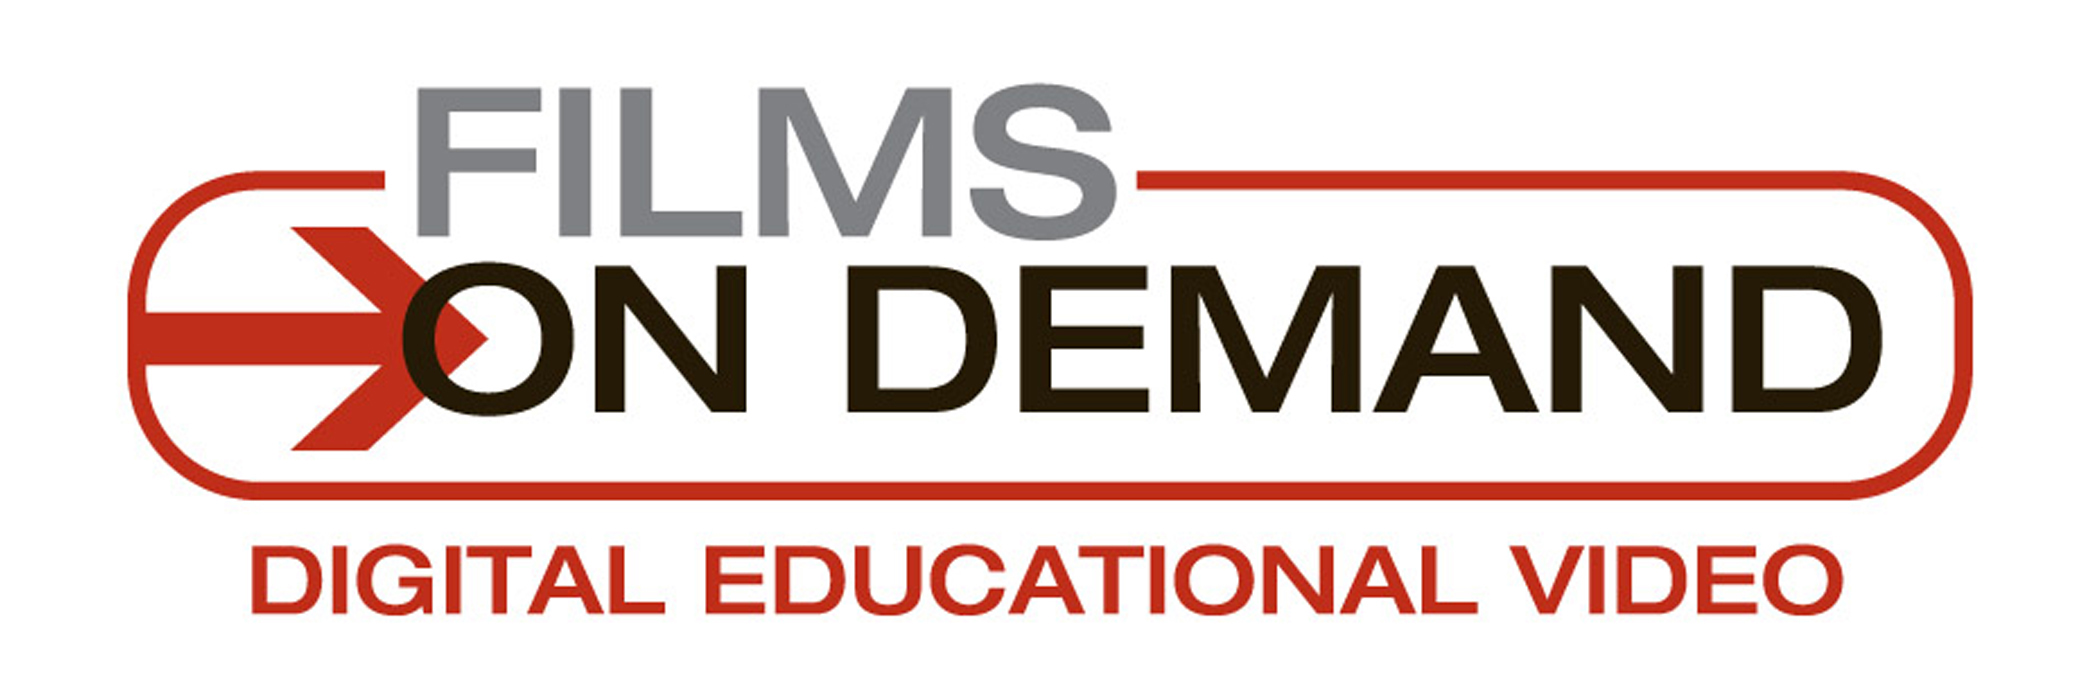 Image of Films on Demand service